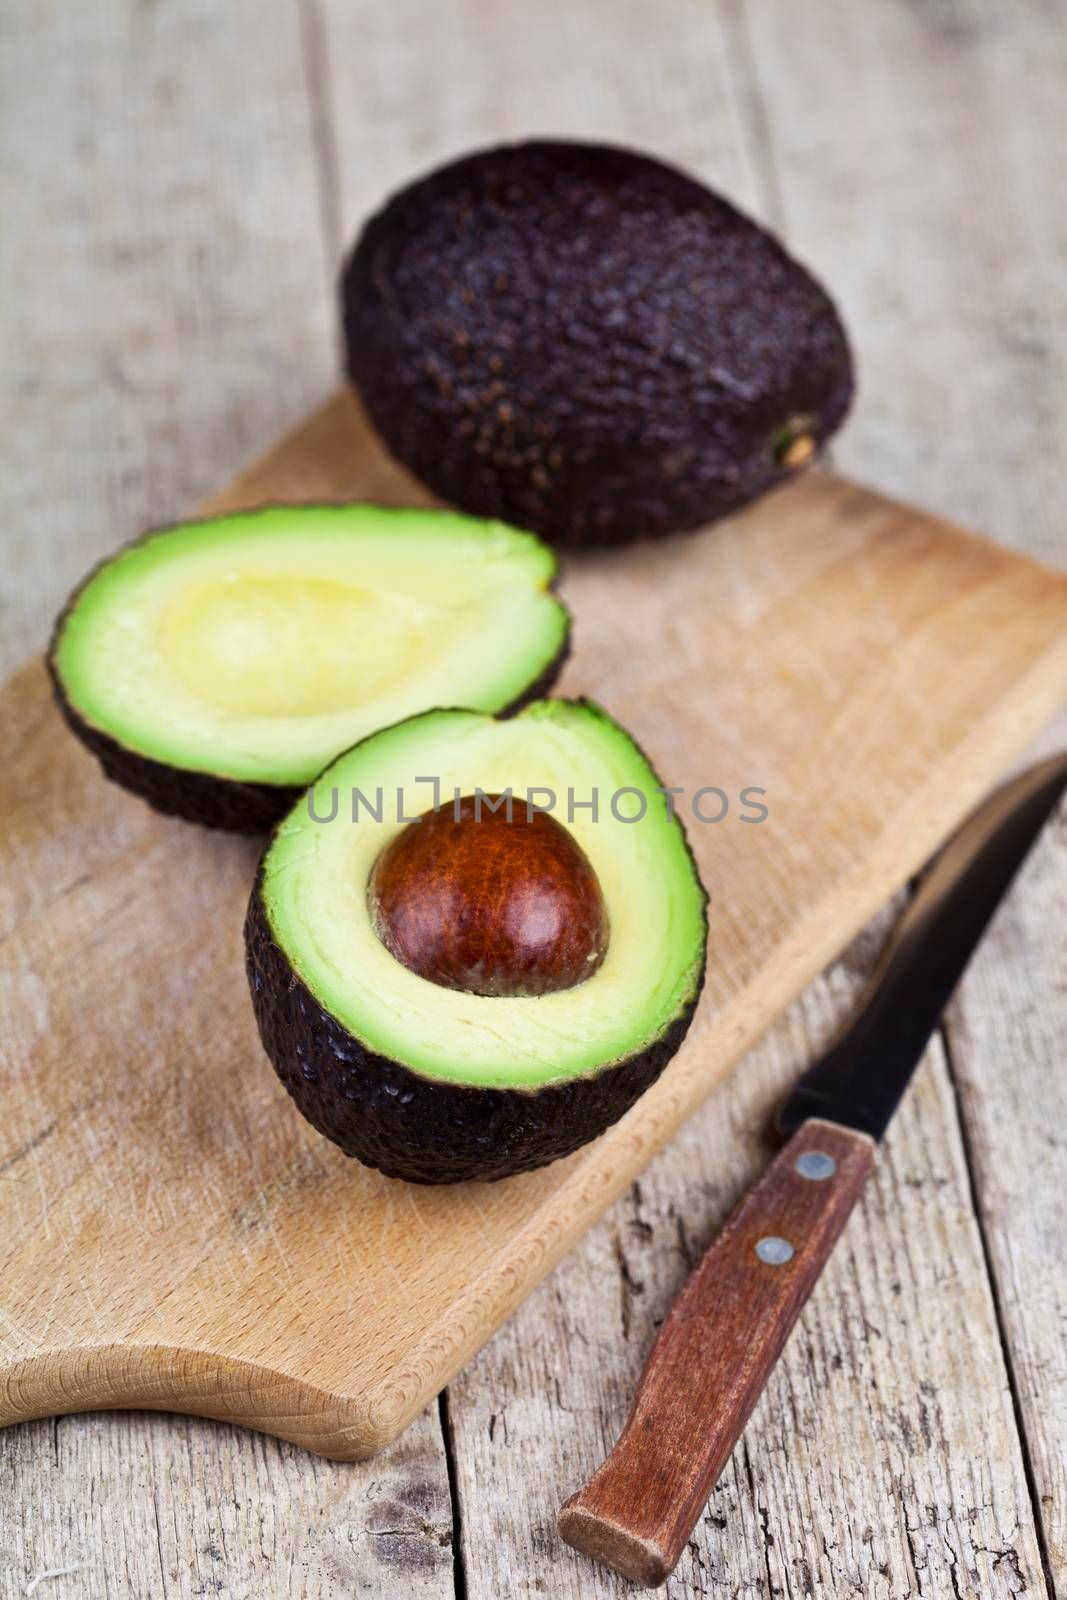 Avocado and knife on cutting board on old wooden table background. Fresh avocado halves on rustic wooden backround with copy space. Healthy food concept.